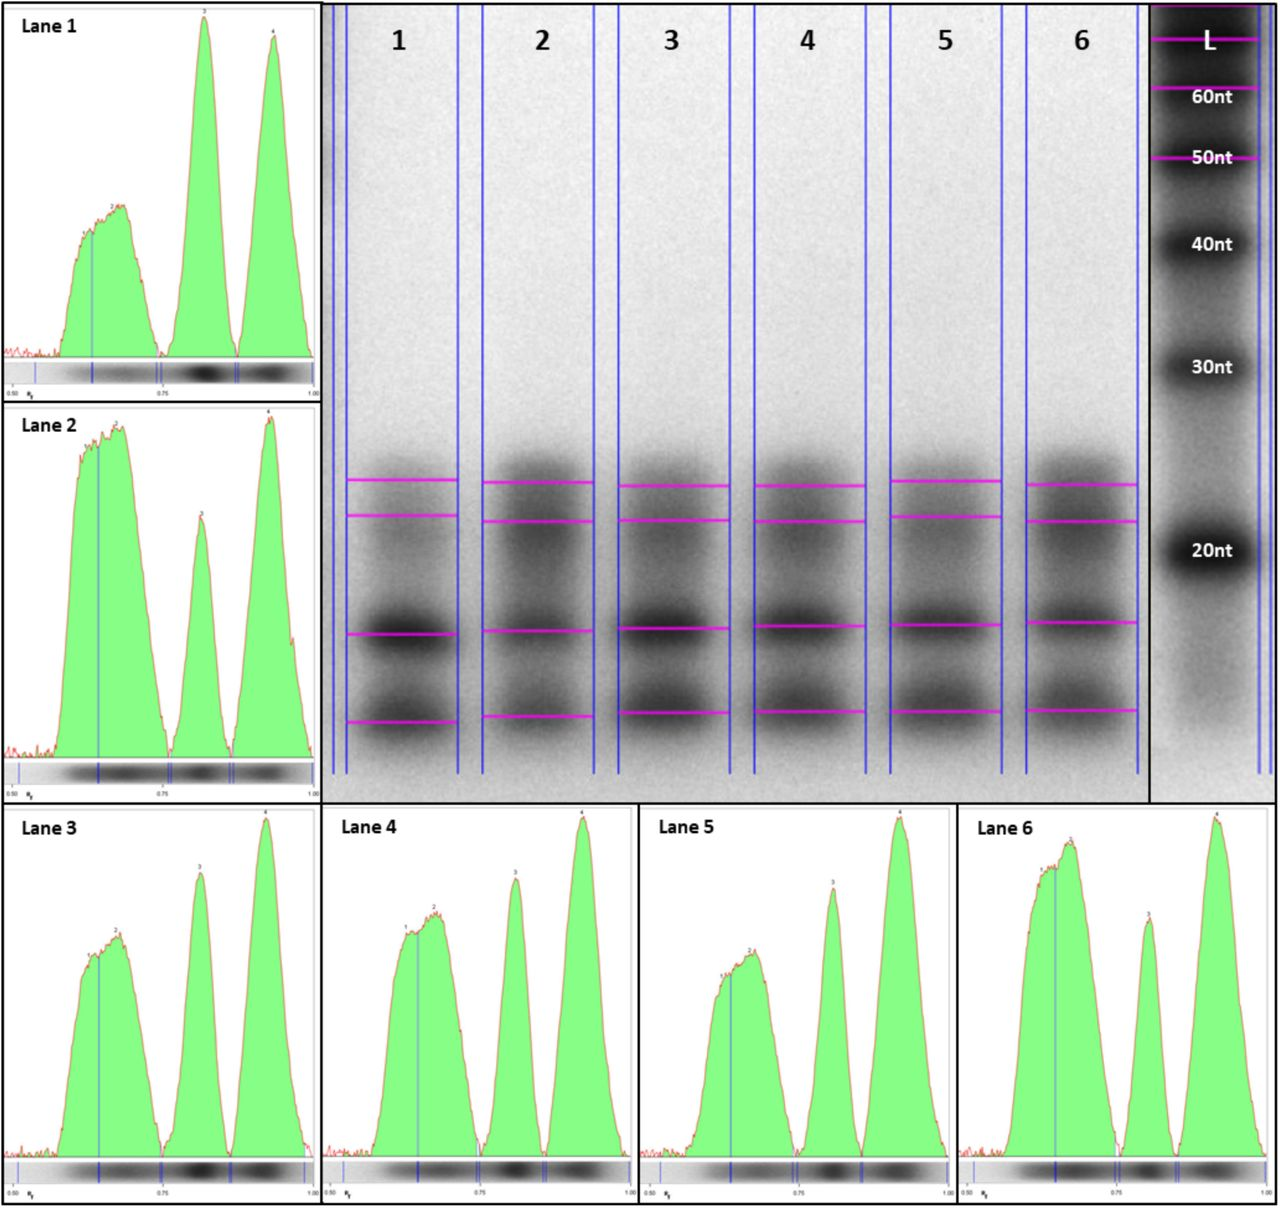 HvCESA1-associated sRNAs. Ribonuclease protection assays were performed to detect HvCESA1 -derived sRNAs across barley leaf development 11-16dpi (Lanes 1-6). A sense RNA probe was used to protect HvCESA1 antisense RNAs. Band intensities for lanes 1-6 are shown in individual panels to evaluate the resolution and abundance of 21-24nt bands. Smaller bands (